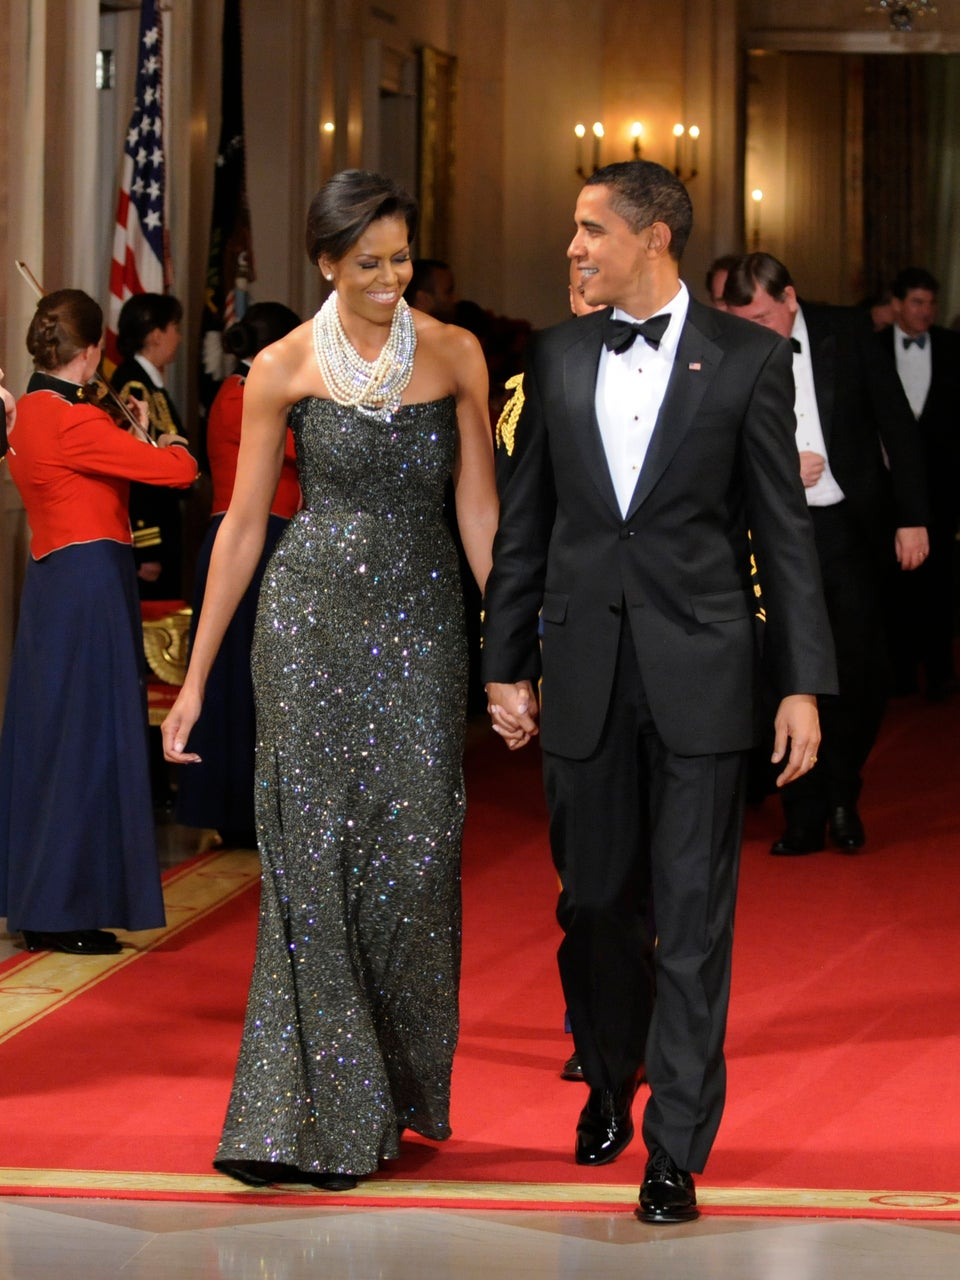 Five New Details From The Obamas' EPIC Farewell Bash